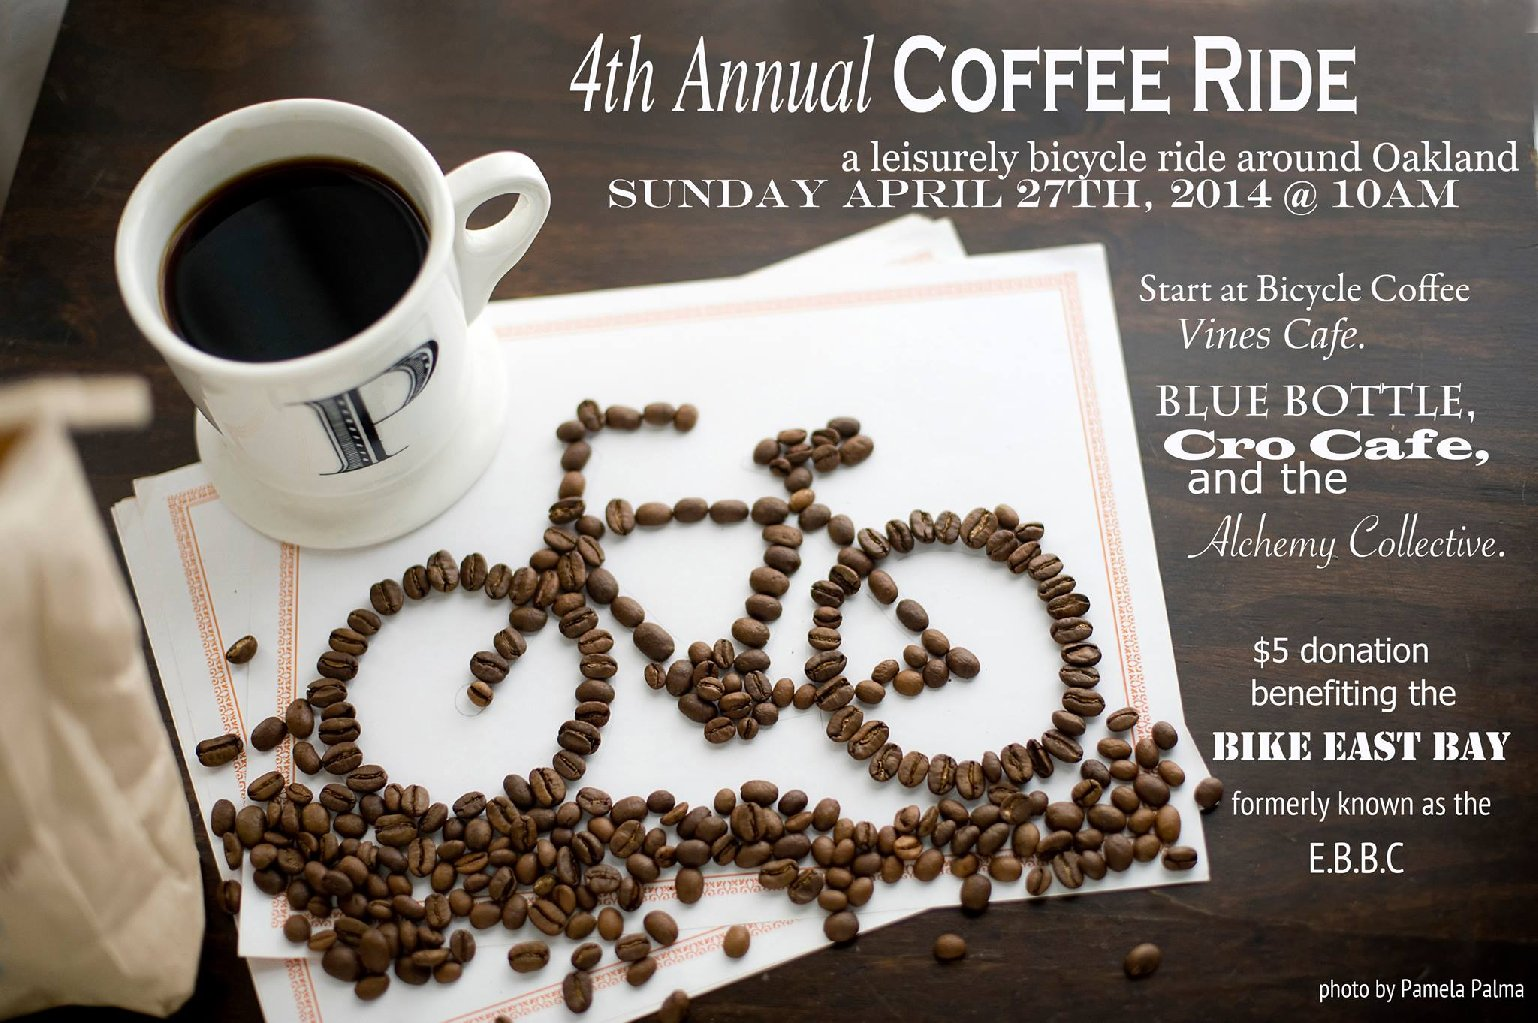 4th Annual Coffee Ride